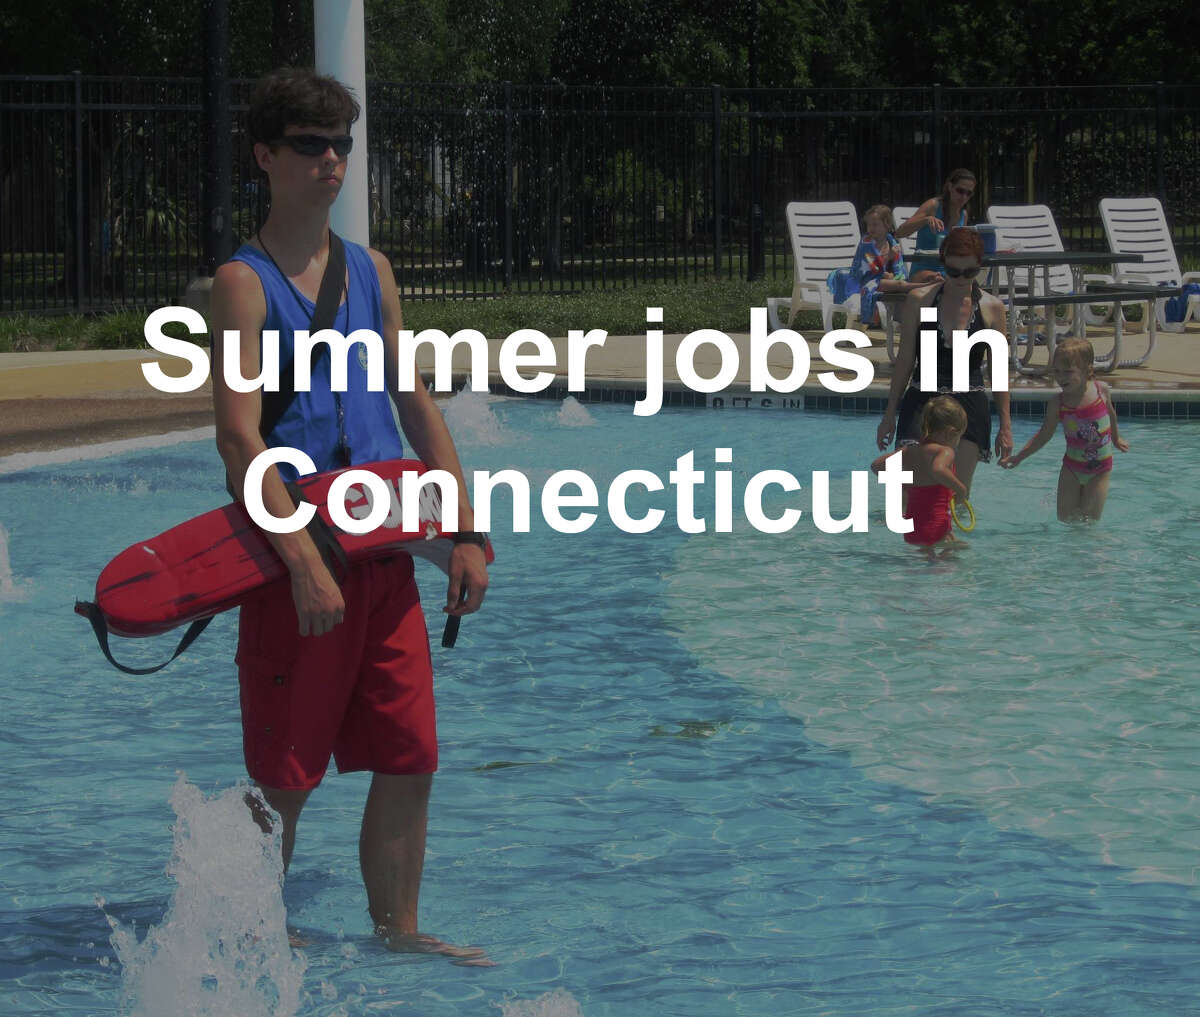 Lifeguarding, long a staple of summer jobs for young people, is less volatile than retail, which has seen declines as people move to online shopping.